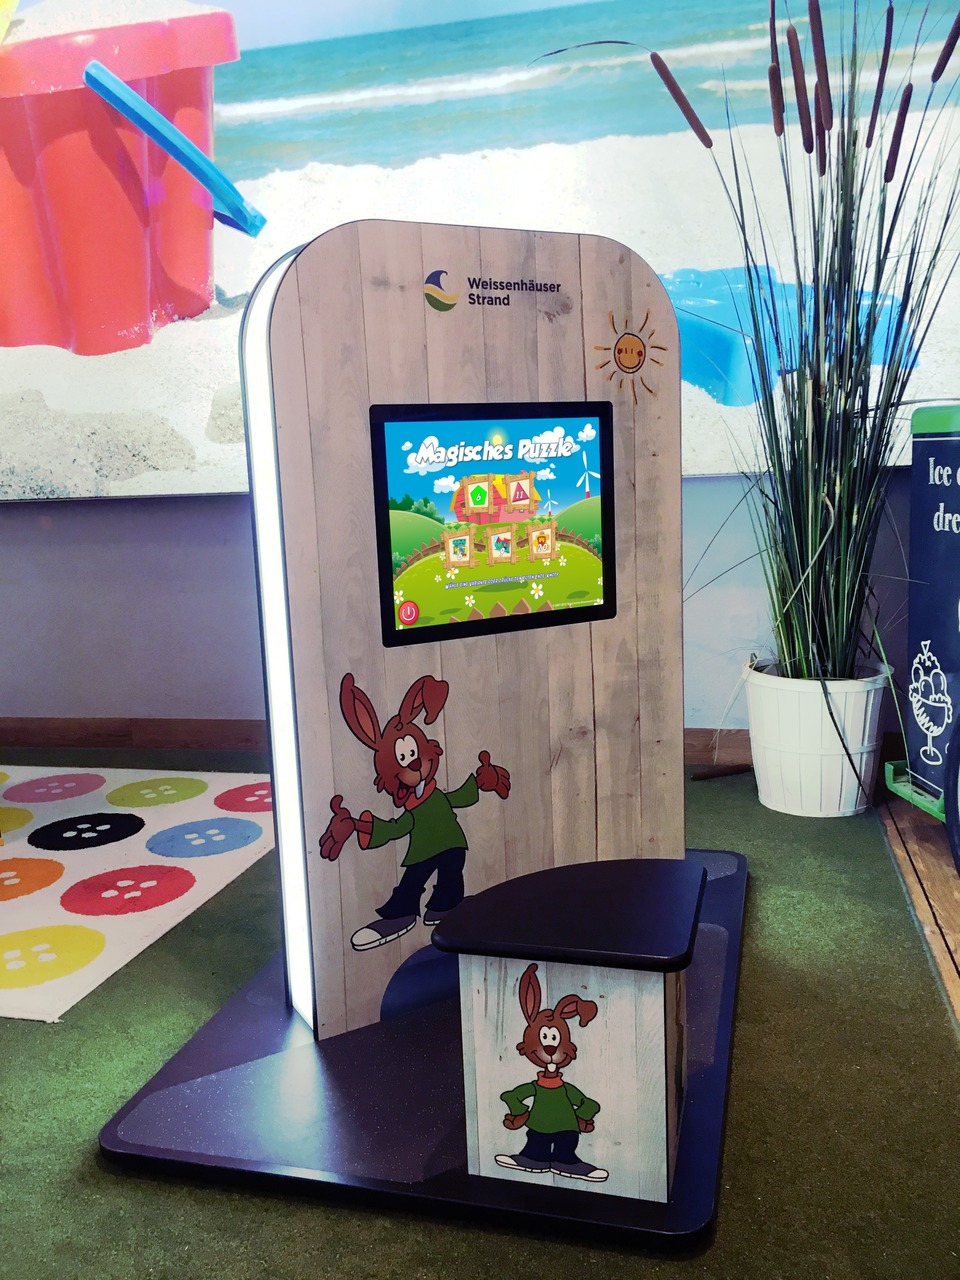 MyKidsCorner Deluxe 2 x Touchscreen customized for Weissenhäuser Strand